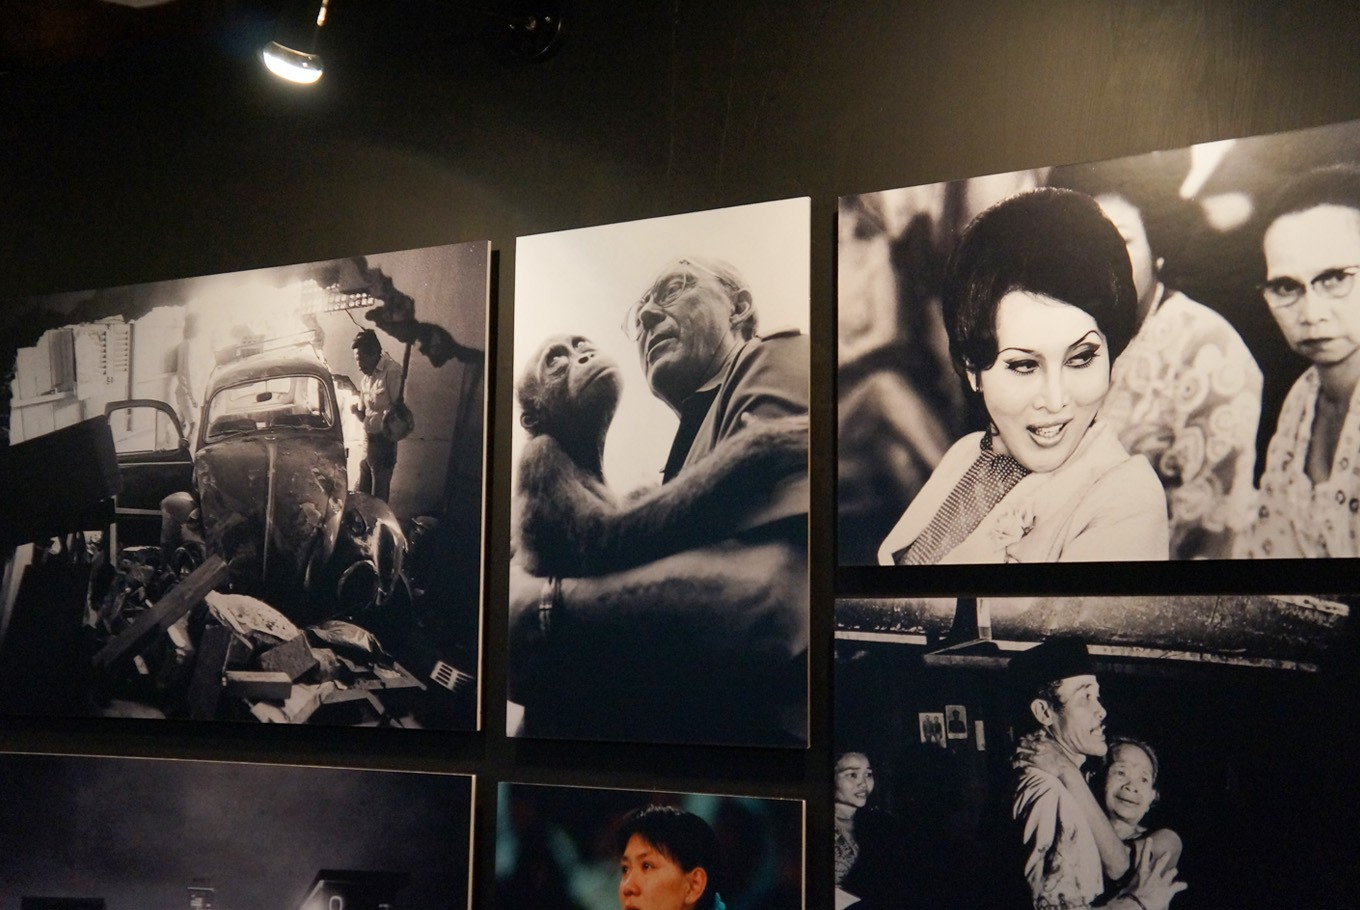 Kartono Ryadi's works are displayed in Kompas' first photography festival. (JP/Masajeng Rahmiasri)